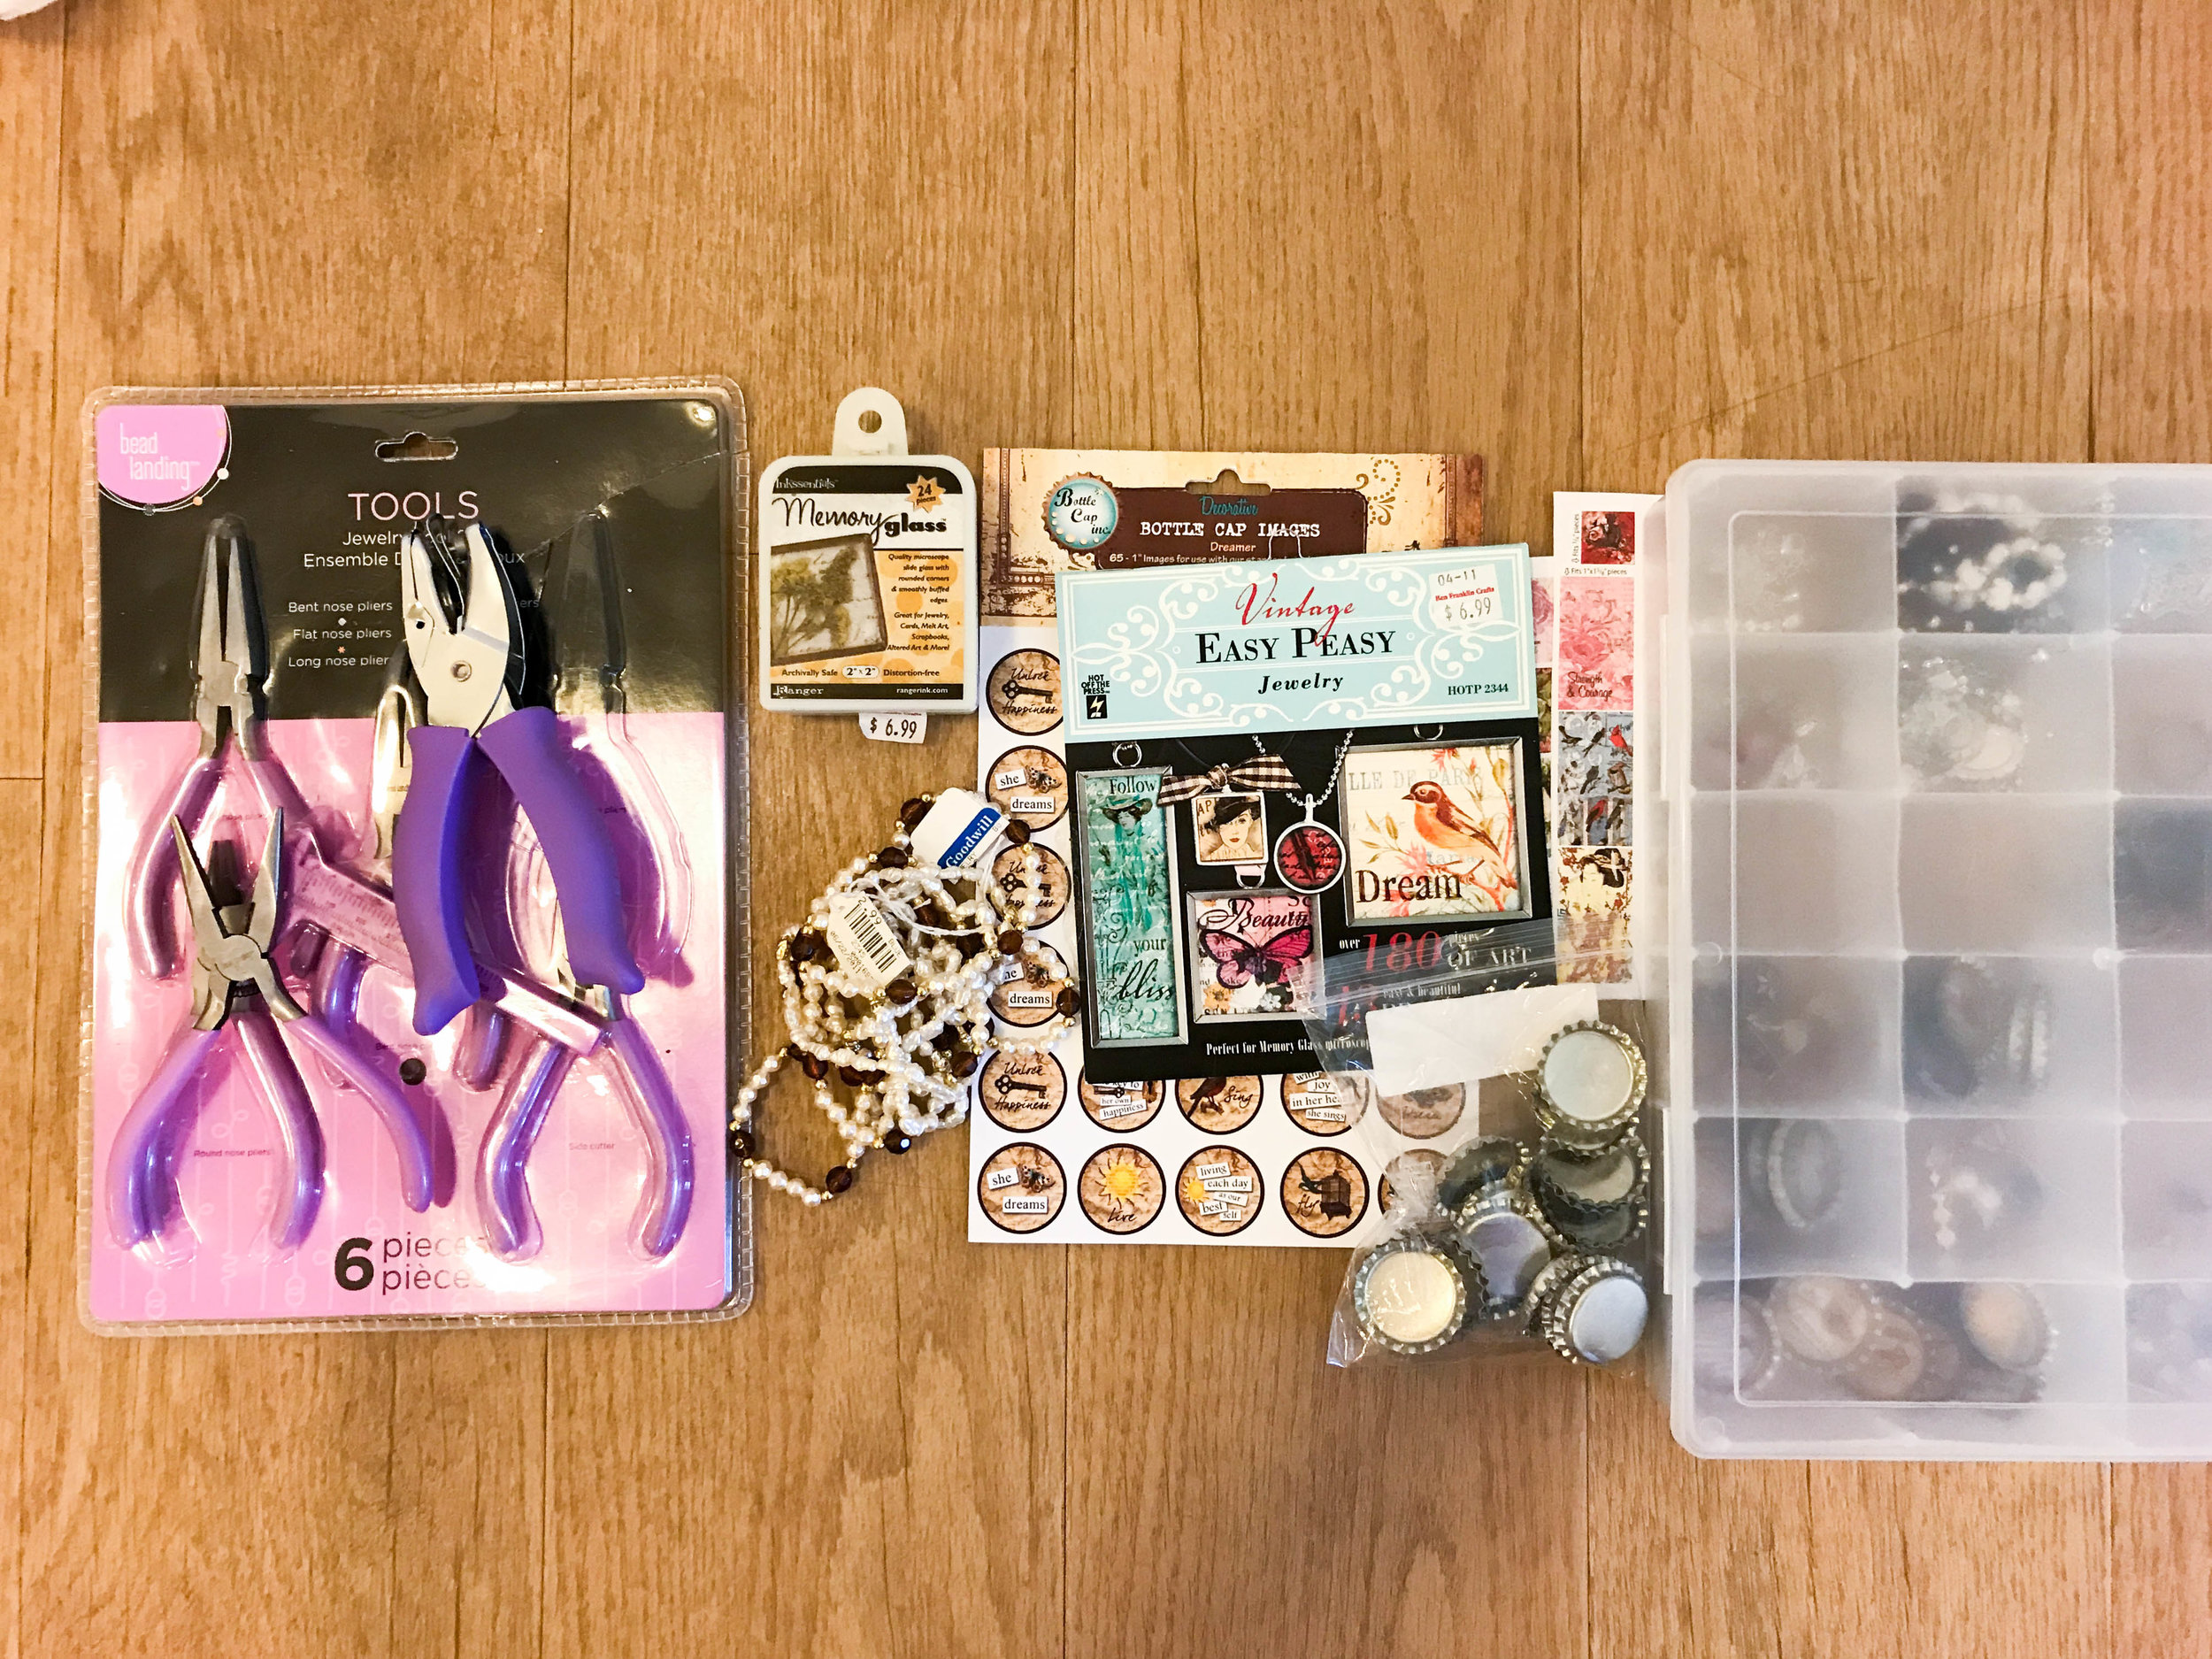 Jewelery making: A few of these items were new but I was able to sell the lot for $25.